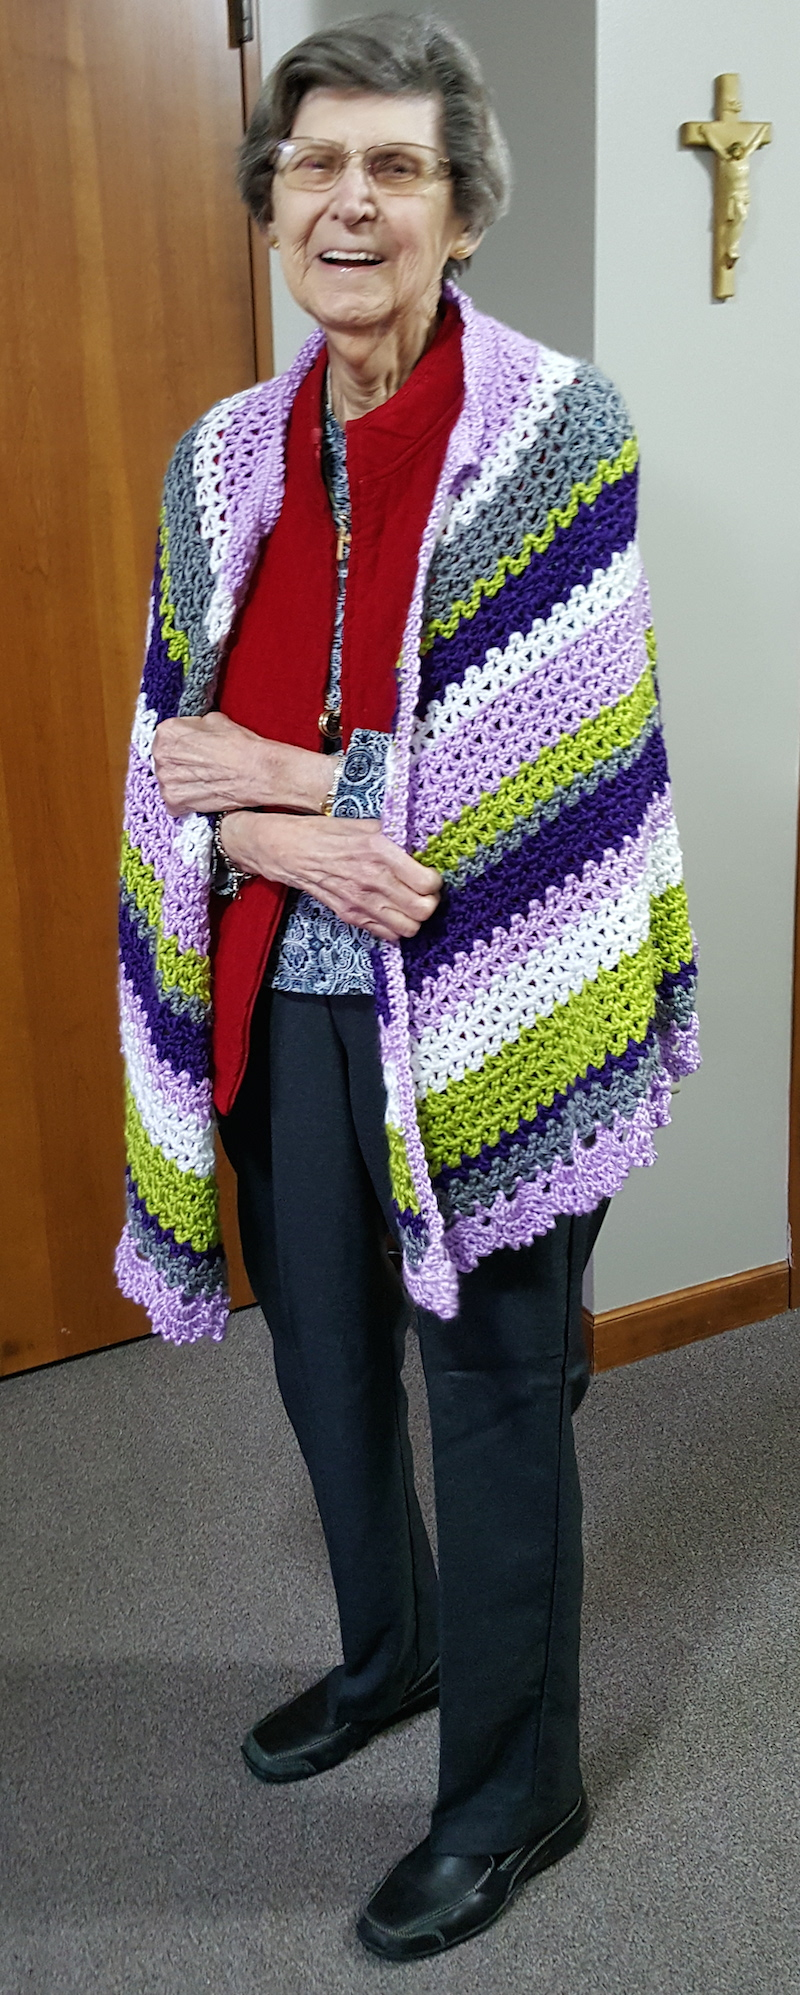 Woman wearing multi-color crochet shawl standing in hallway | Free crochet pattern: Aunt Gladys Shawl by J Crochet for Underground Crafter